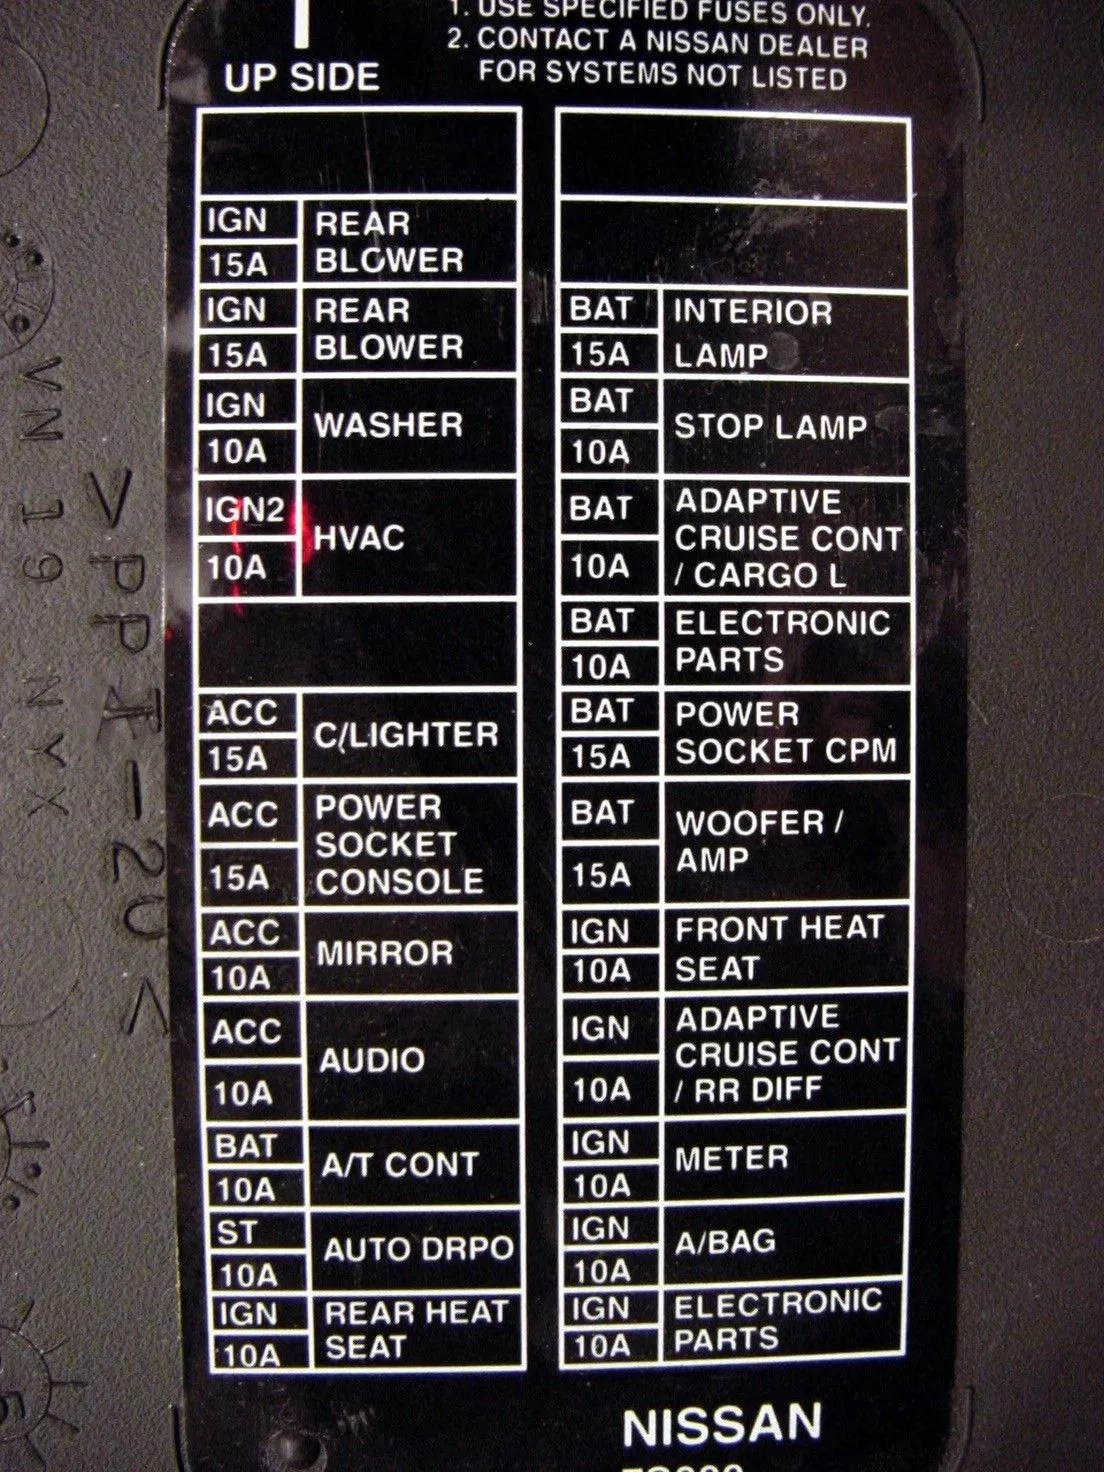 Fuse Box Diagram For 2004 Nissan Sentra | Wiring Diagram Nissan Maxima Fuse Box Diagram on